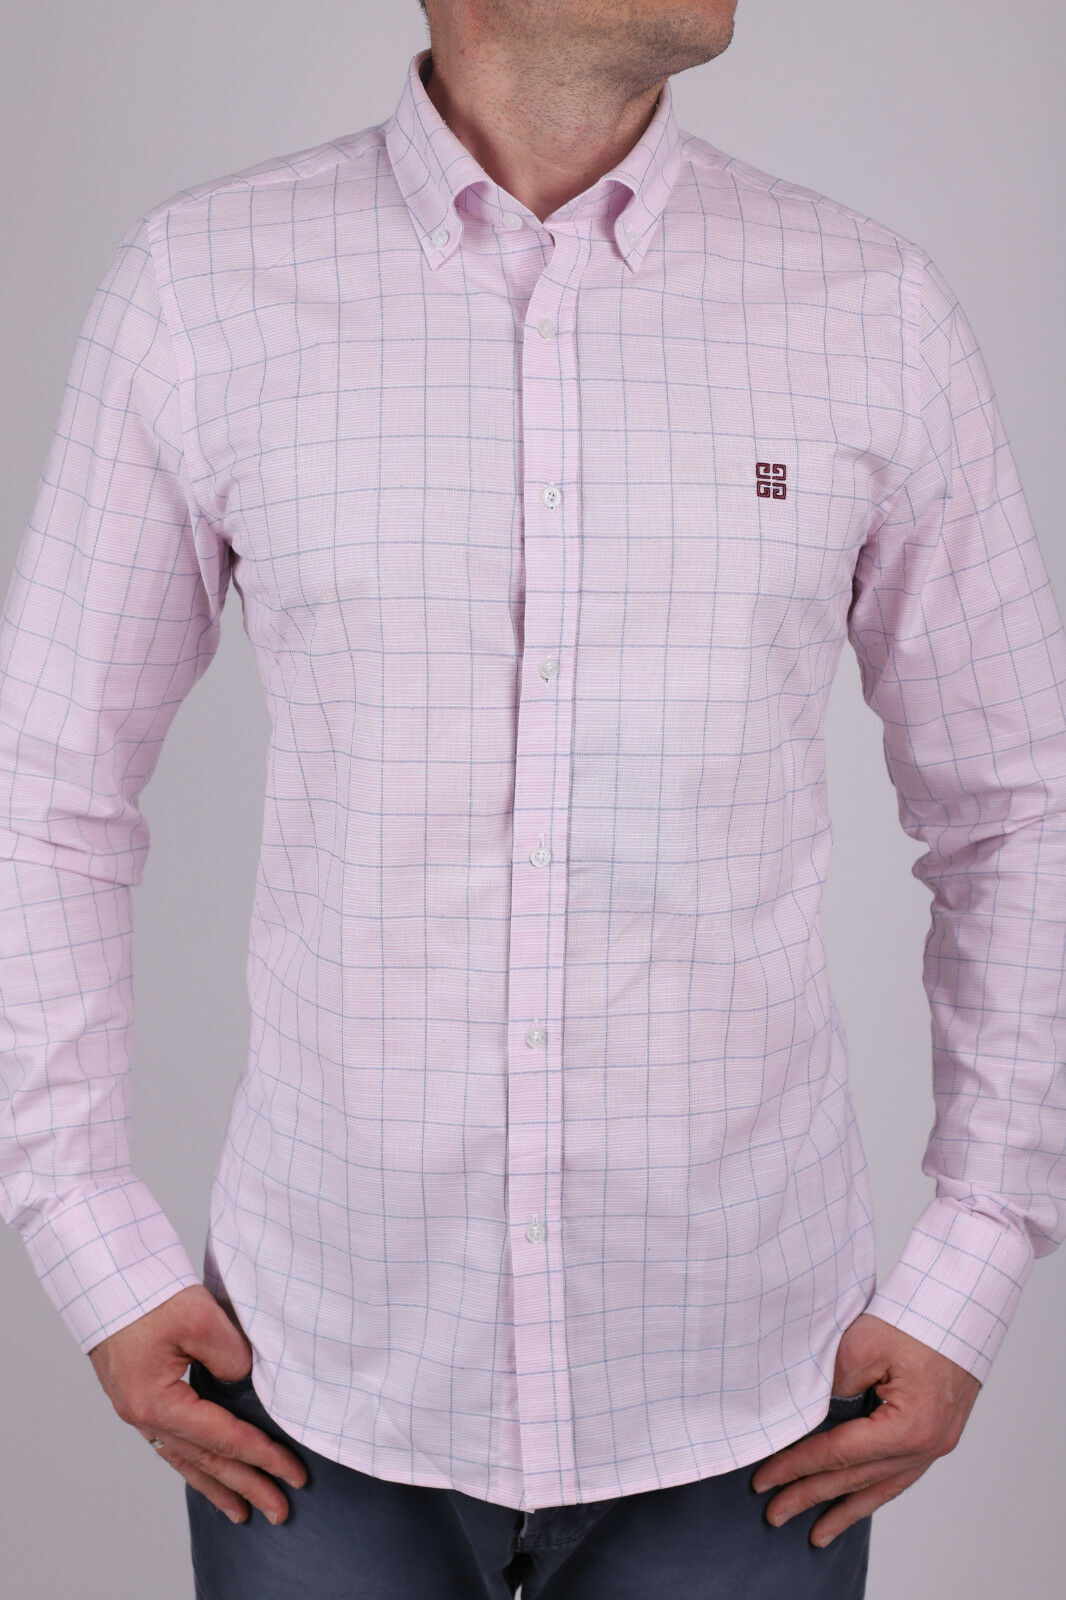 New Model Pink Givenchy  Slim Fit Shirt  Size S